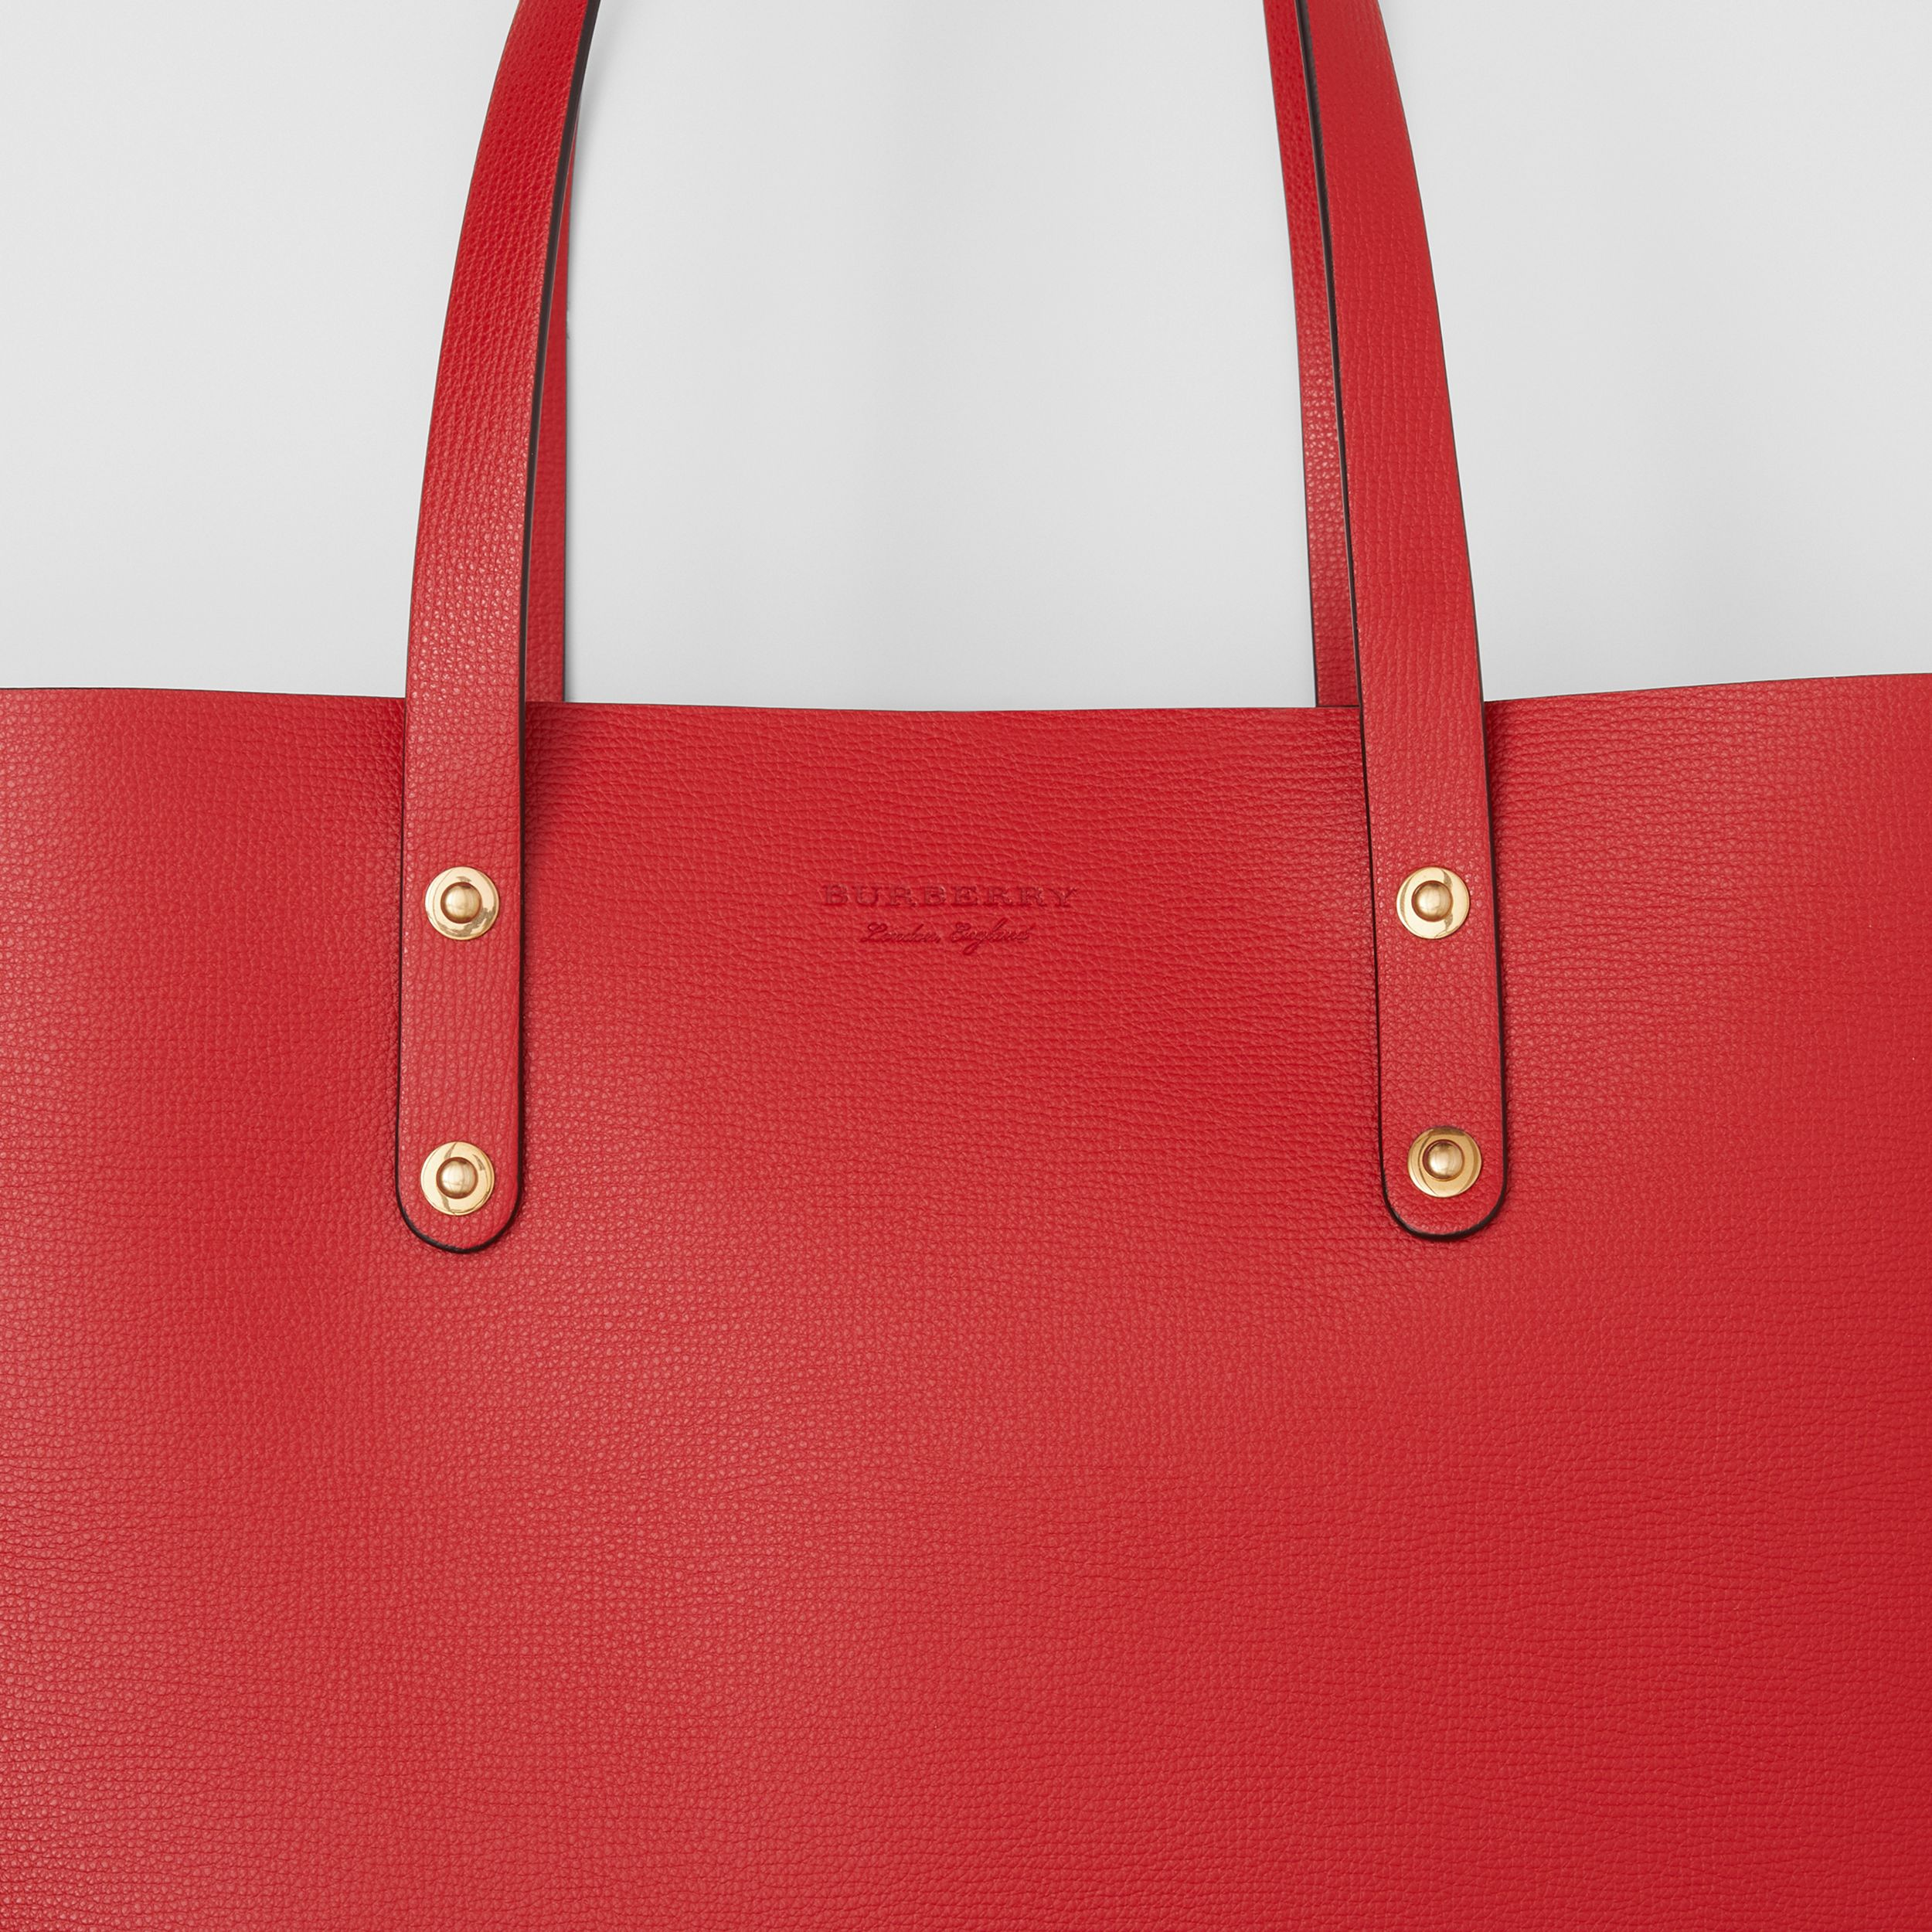 Large Grainy Leather Tote Bag in Rust Red - Women | Burberry - 2